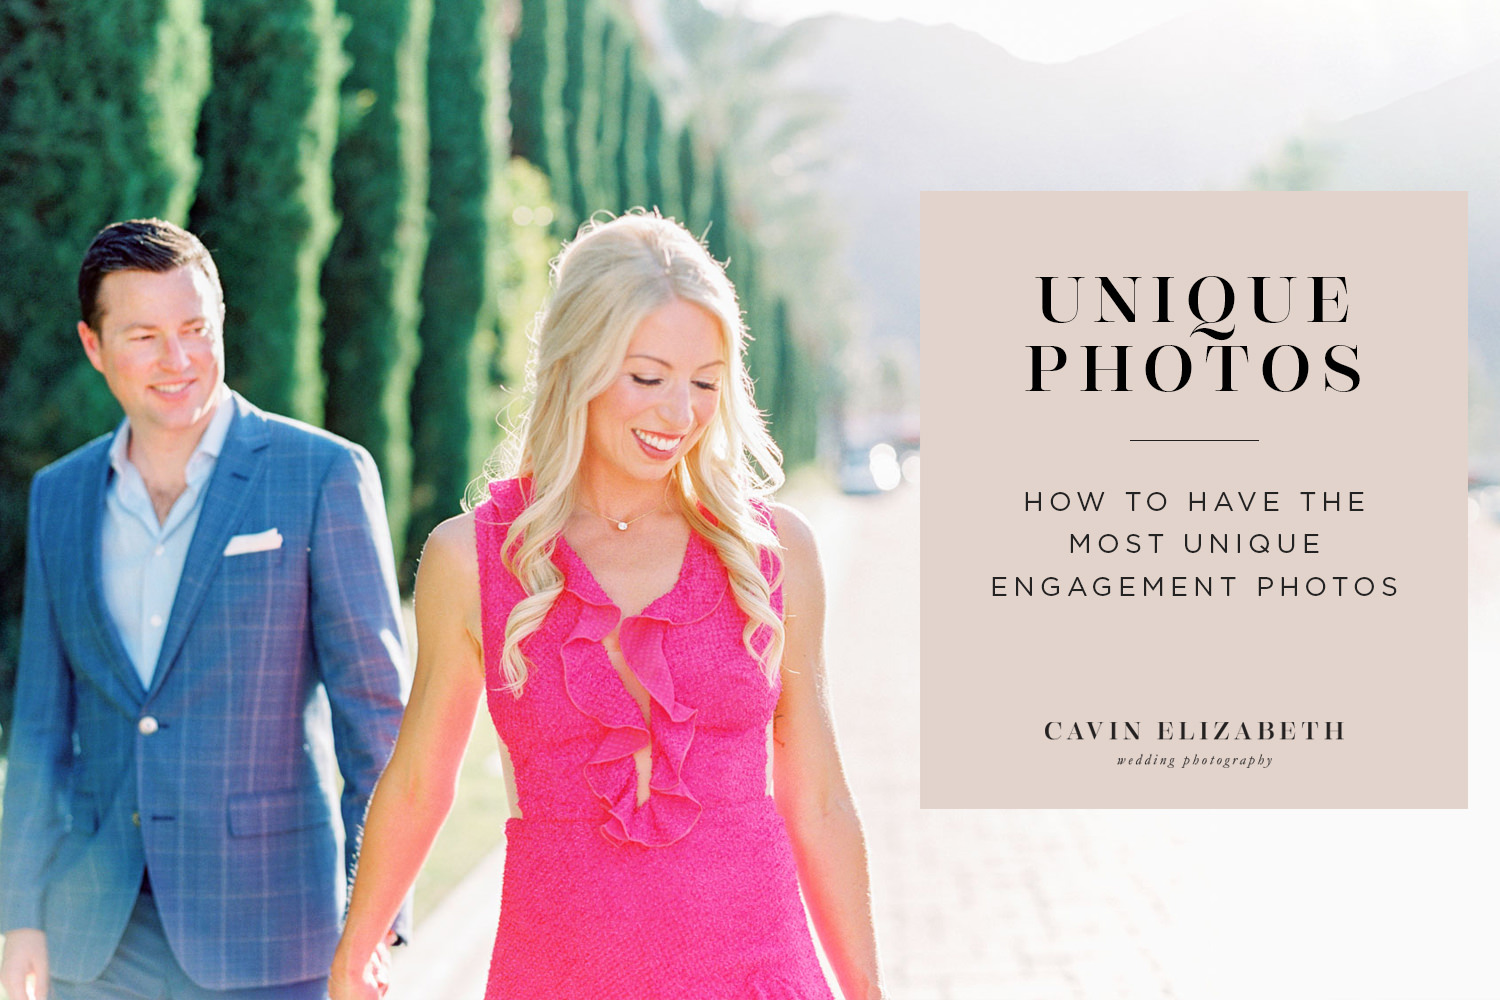 4 Expert Tips for the Most Unique Engagement Photos. How to have an engagement session that stands out from the crowd and is personalized and special to you.